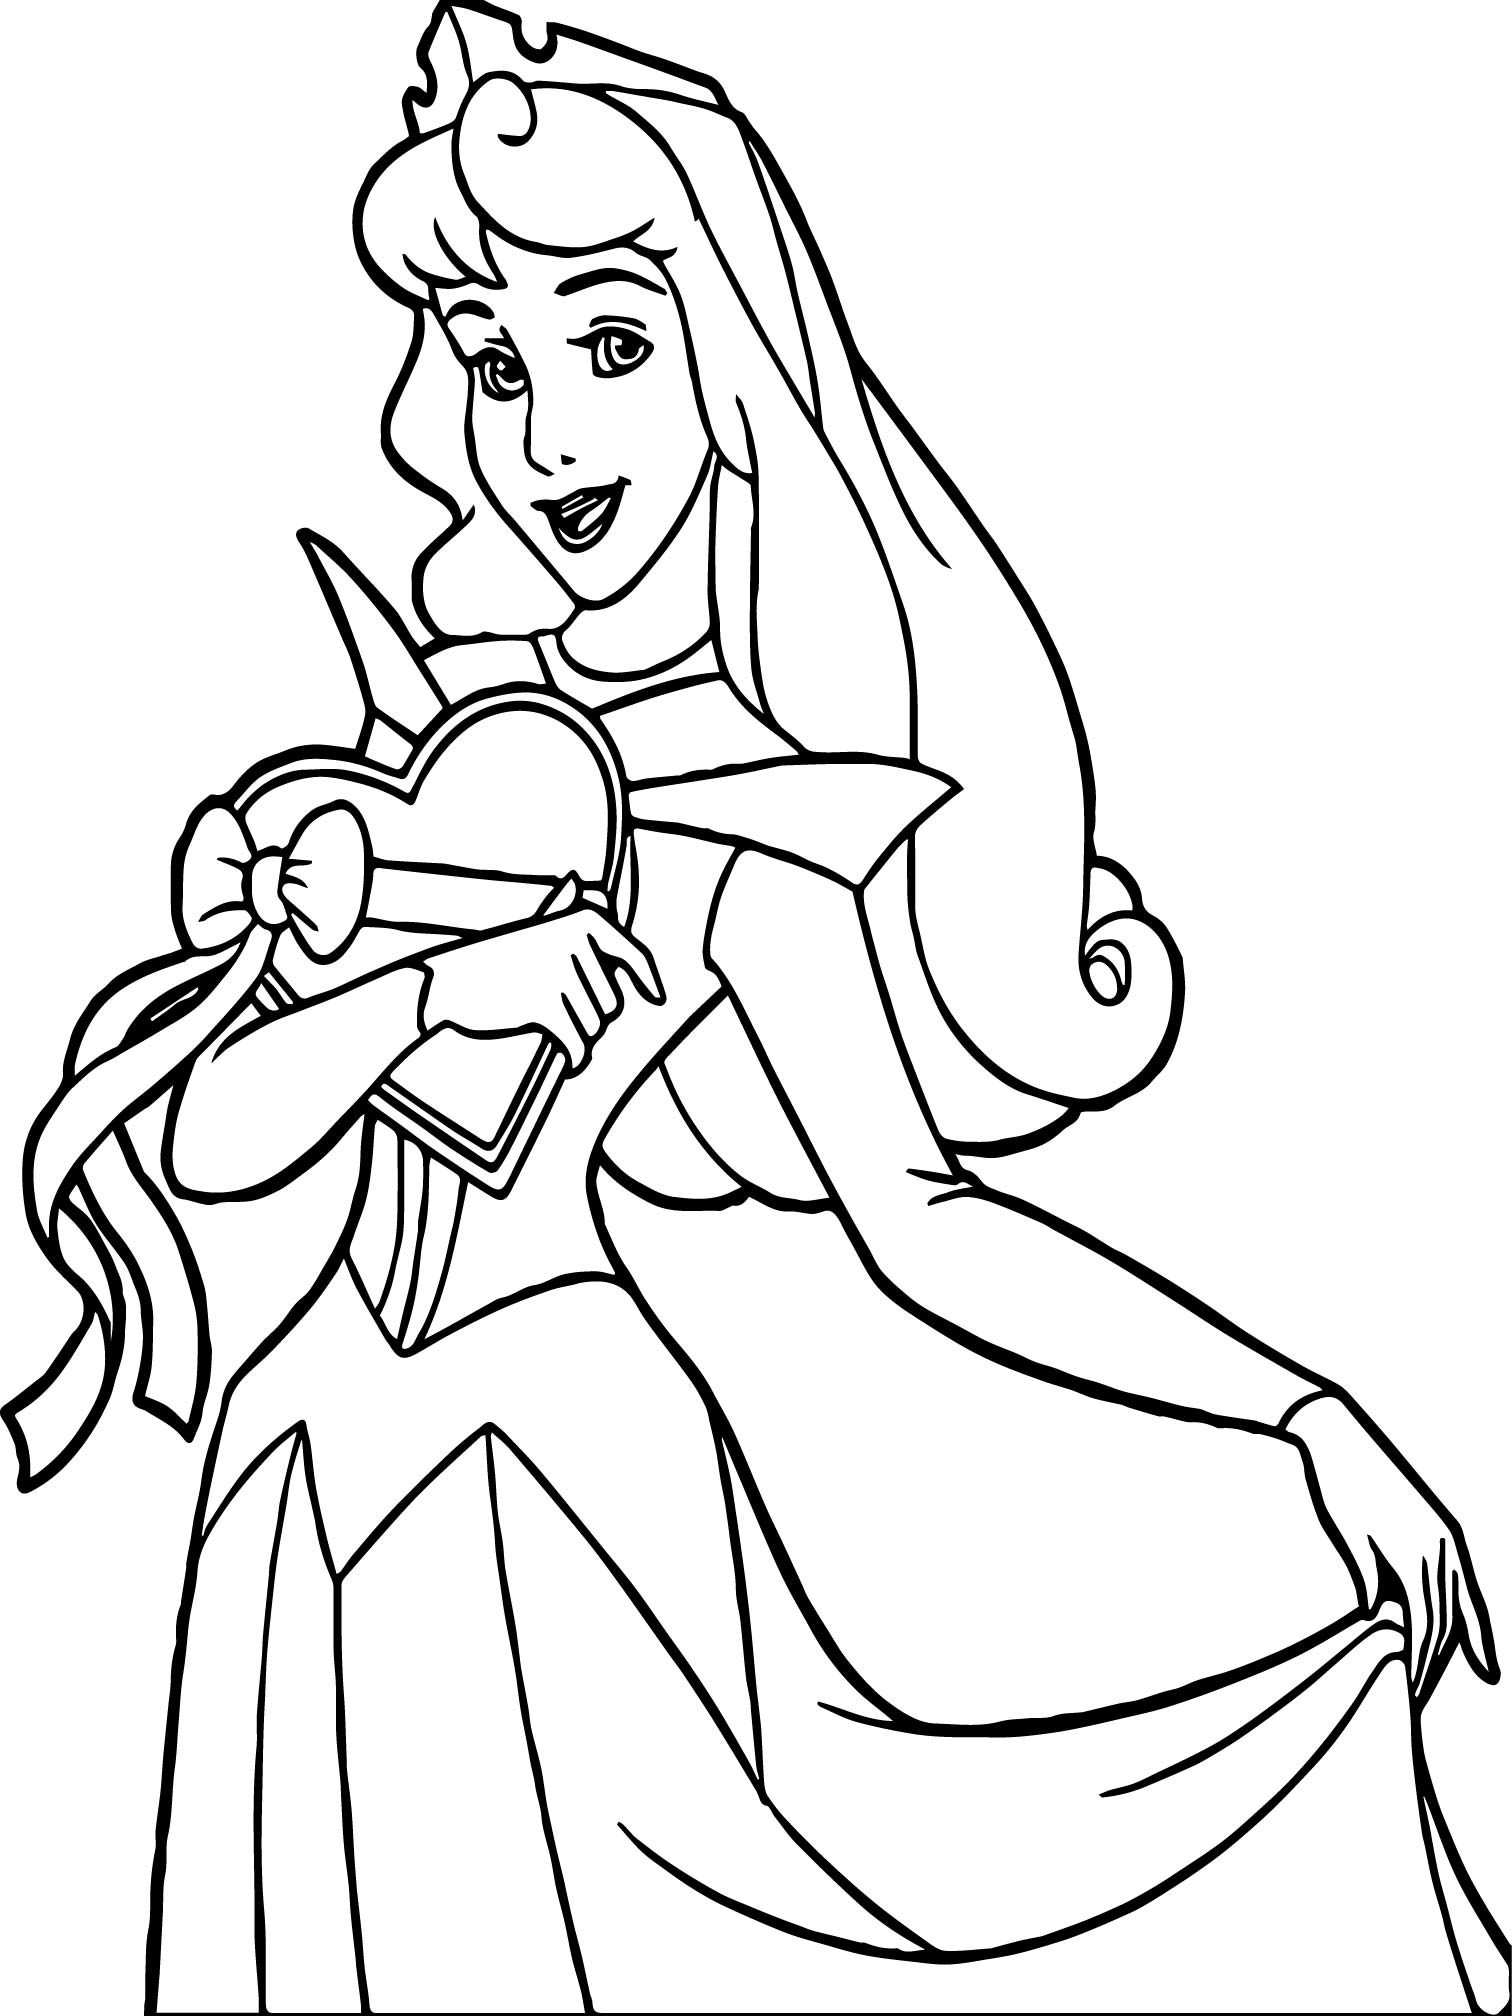 Princess Heart Coloring Page